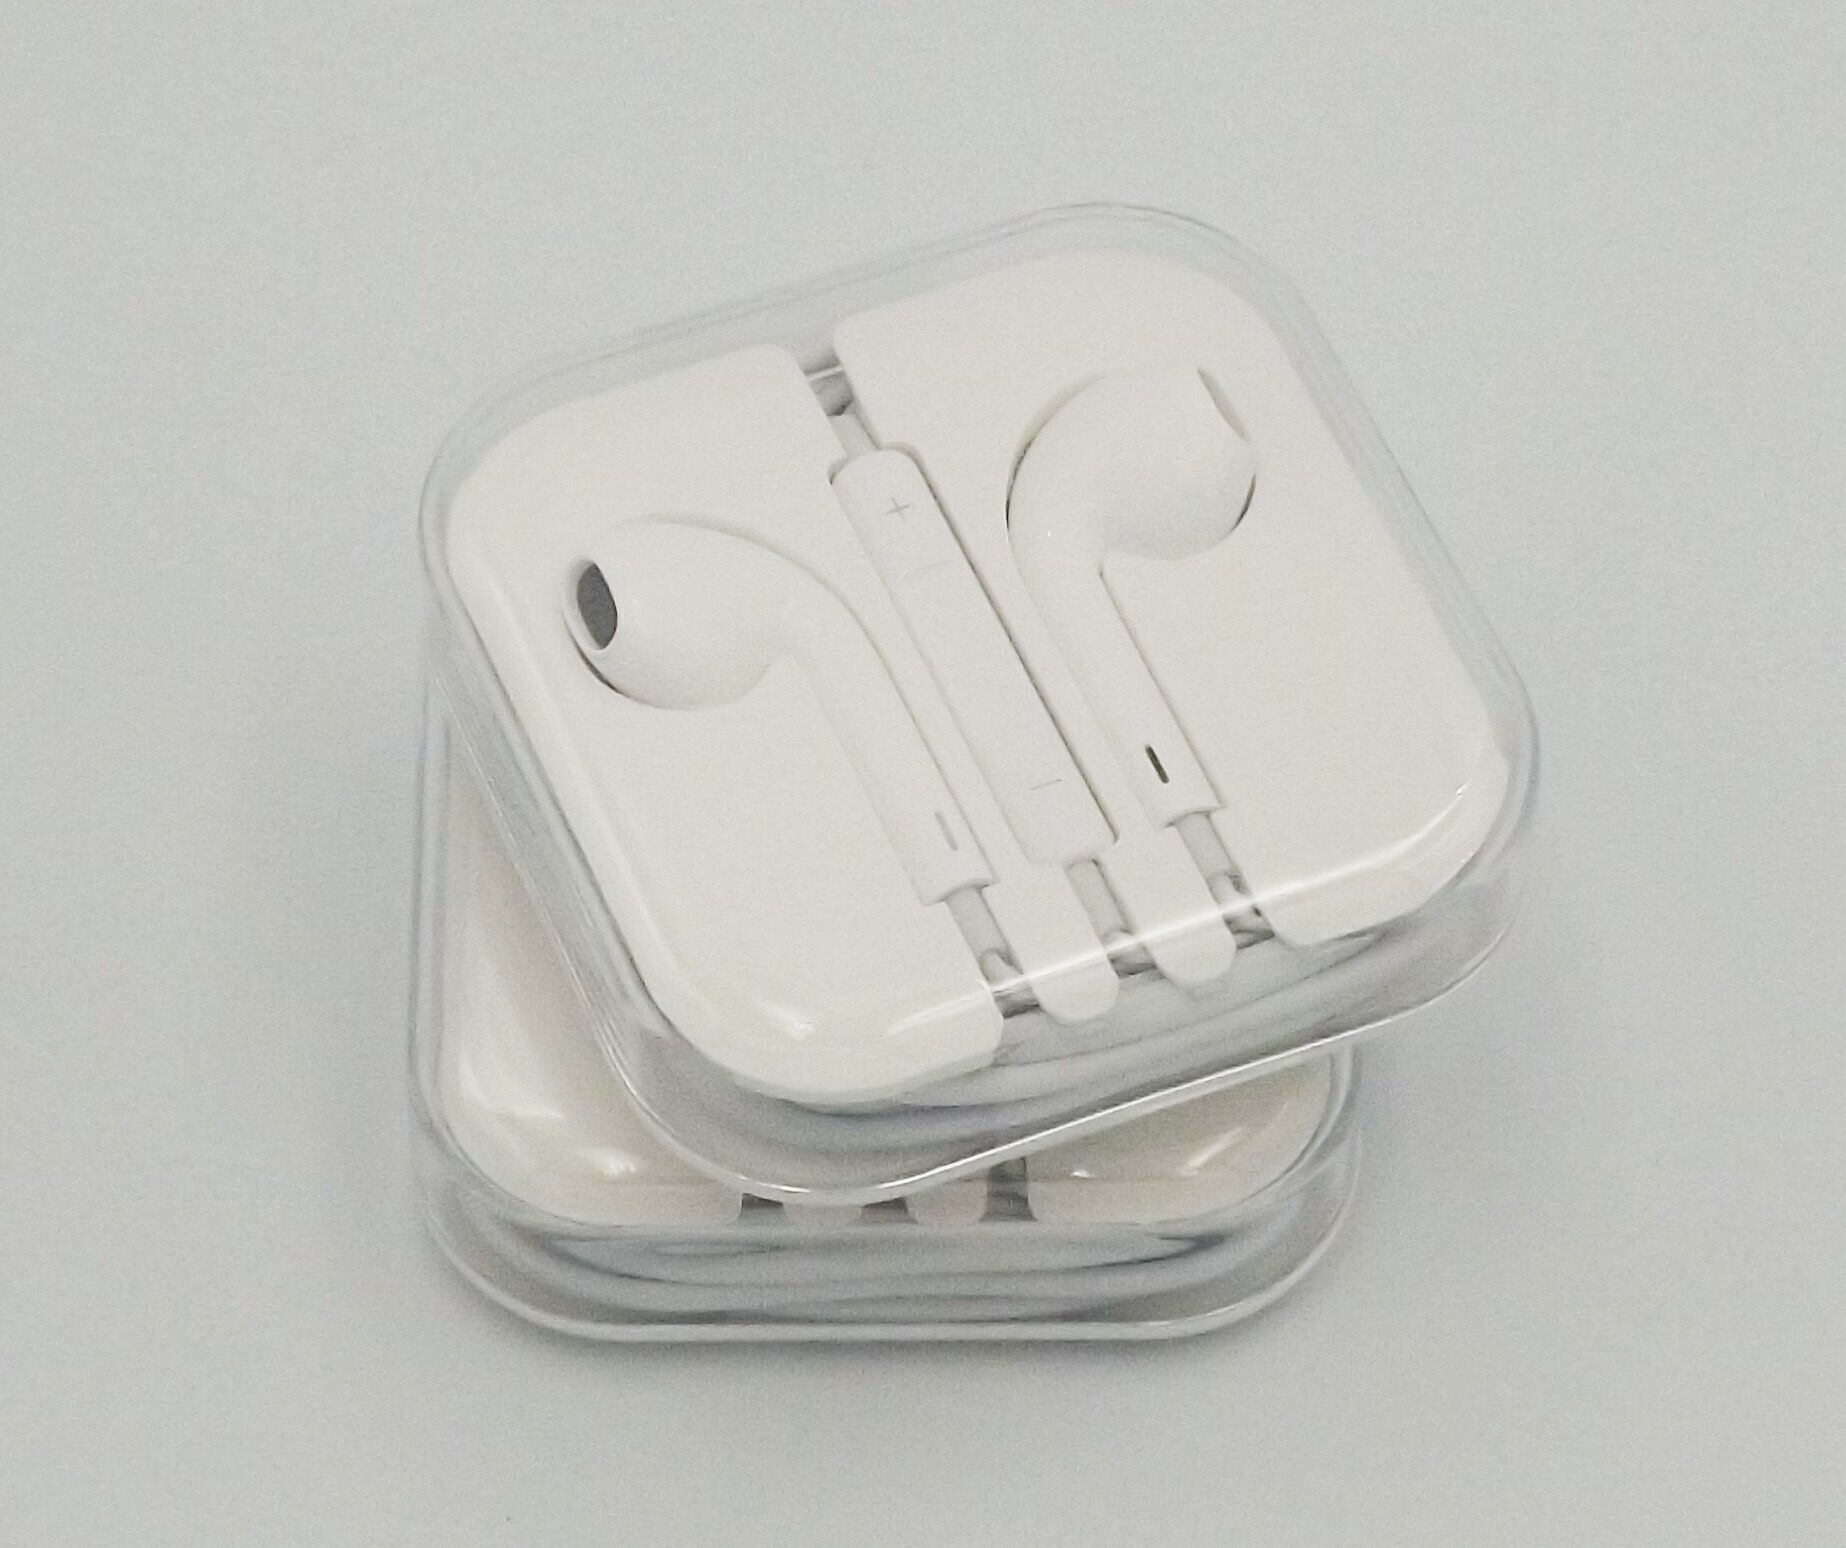 Factory high quality good earphones cheap headsets for apple 7/8/x at good price